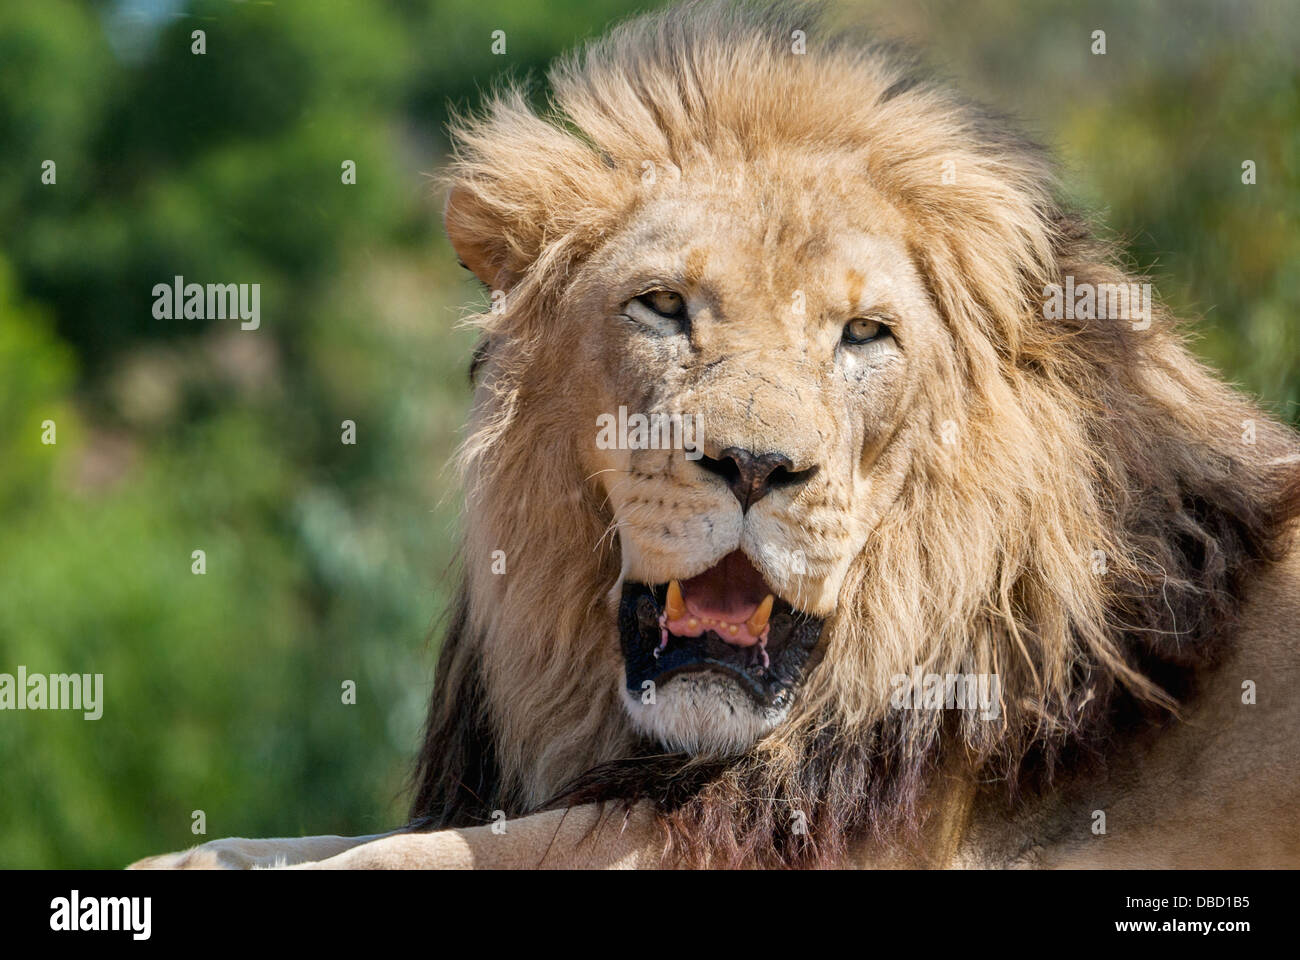 A close-up of a male lion - Stock Image